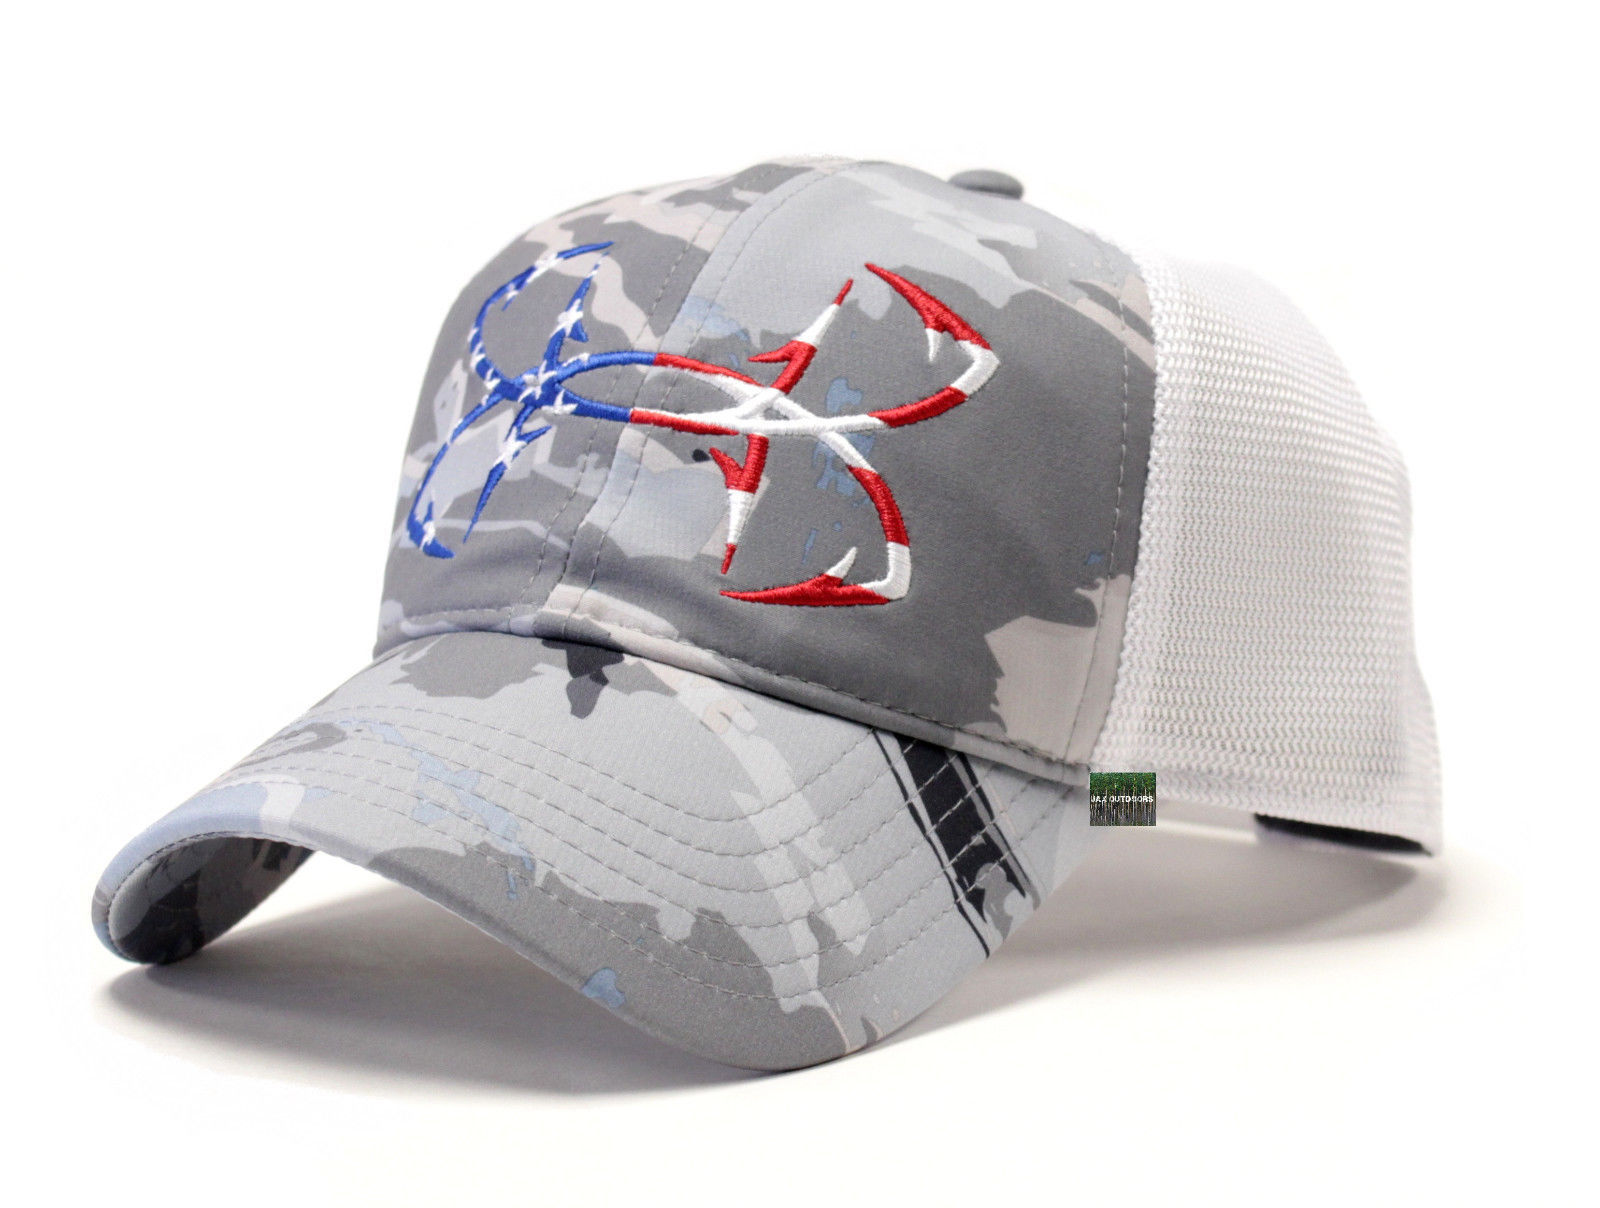 a759e99fac6 Under Armour UA Fish Hook Logo Ridge Reaper® and 18 similar items. 57